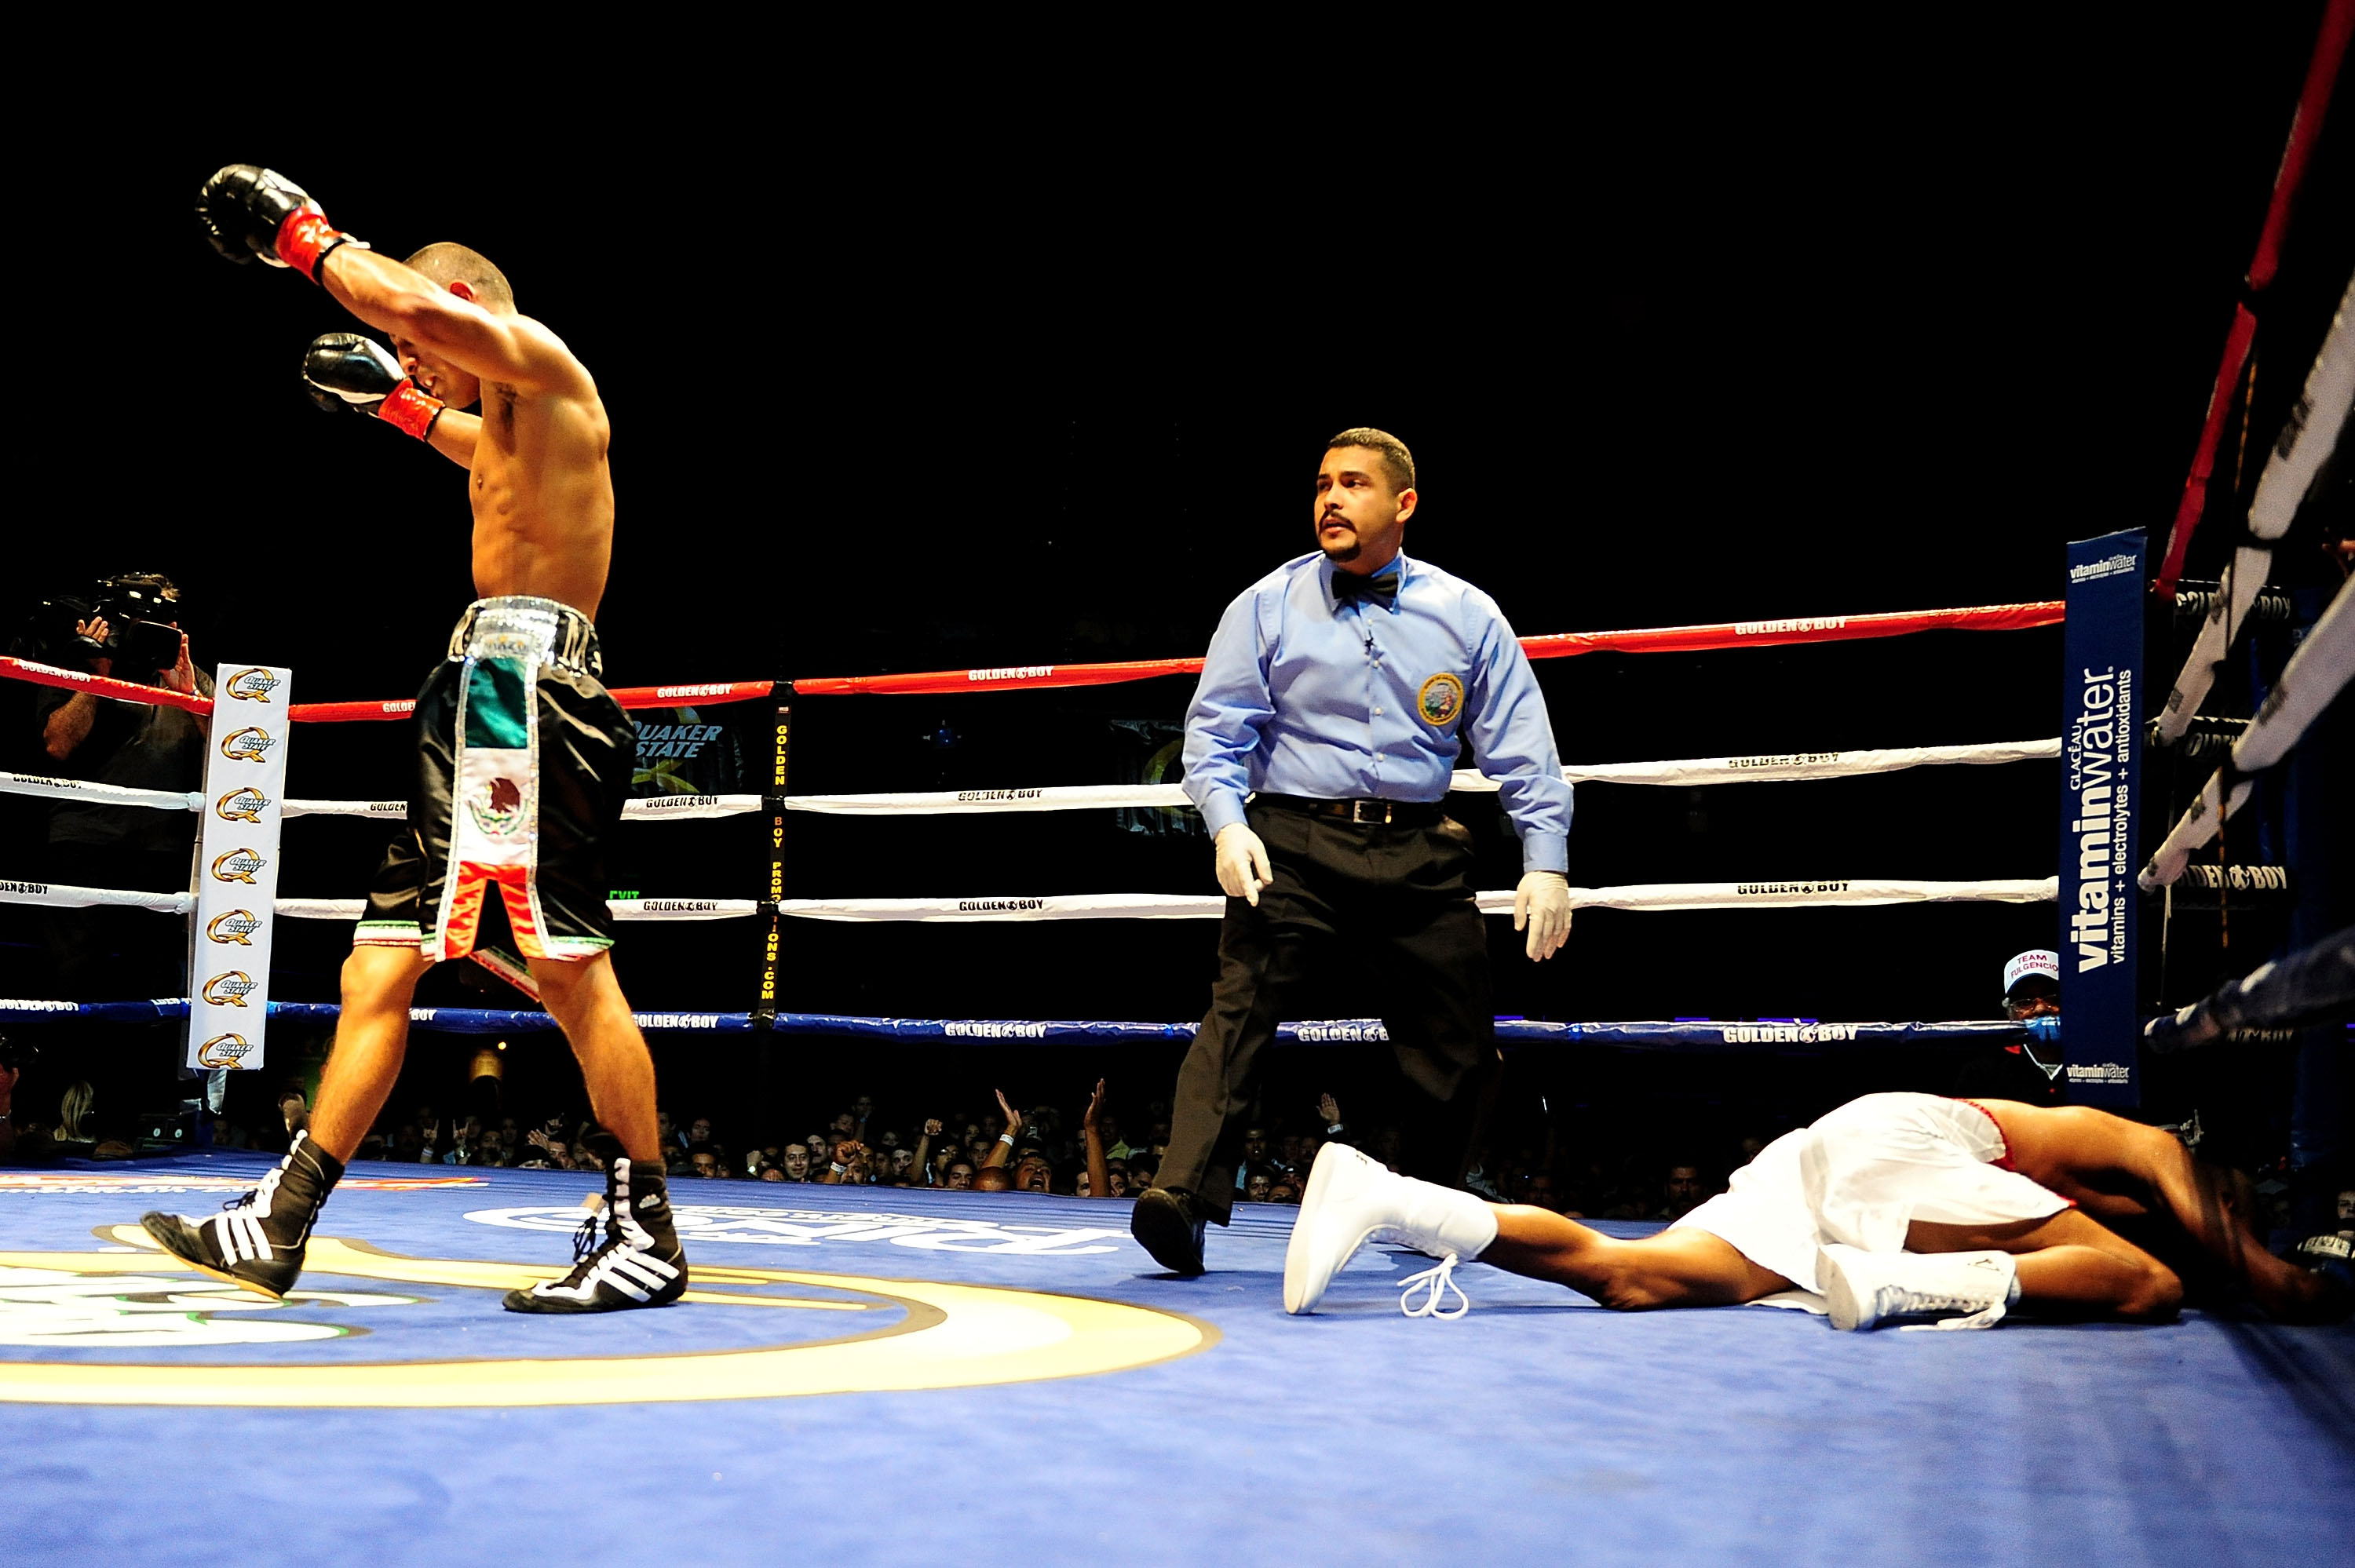 Amir Khan And The Top 11 Young Boxers To Watch In 2011 Bleacher Report Latest News Videos And Highlights